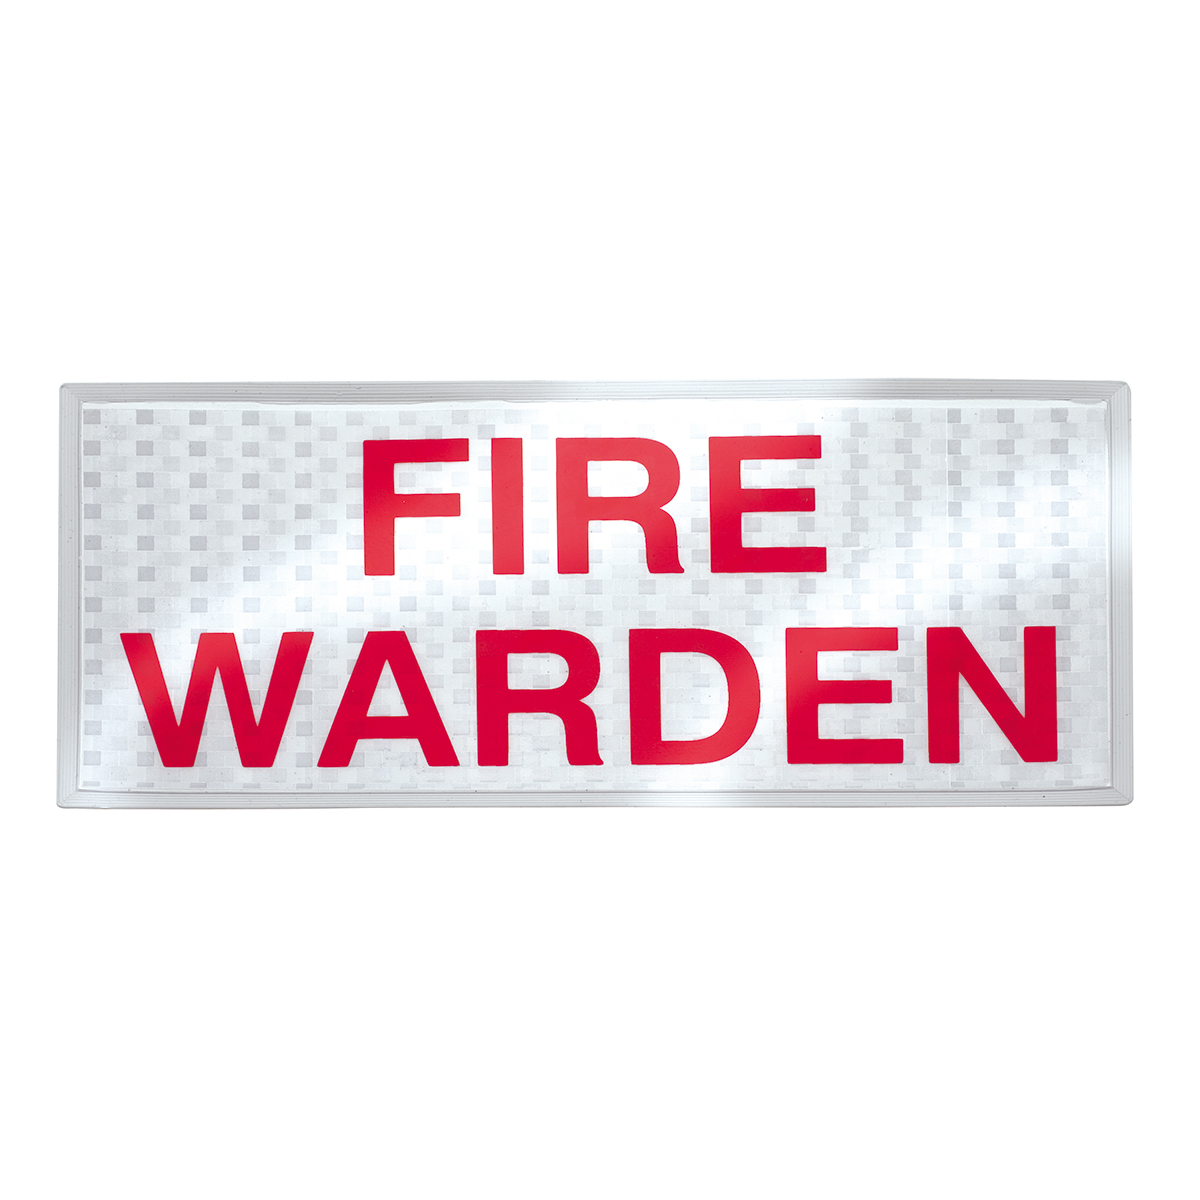 Fire Warden Reflective Badge Set